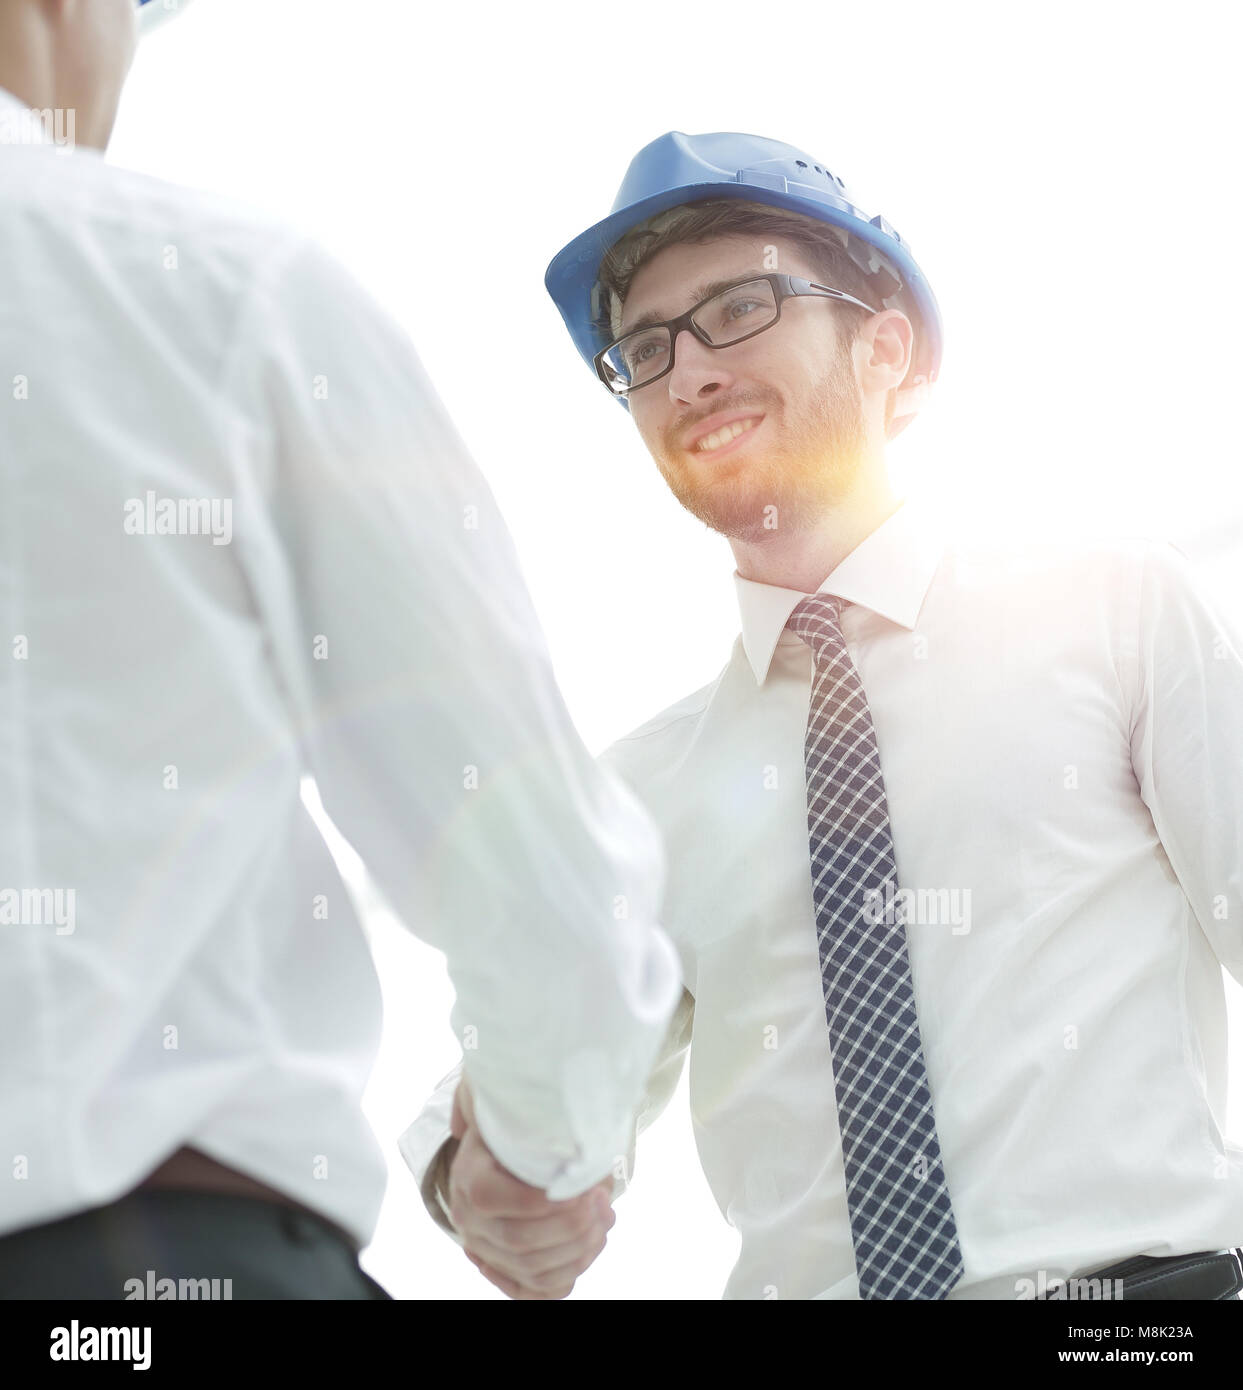 handshake architect and civil engineer - Stock Image